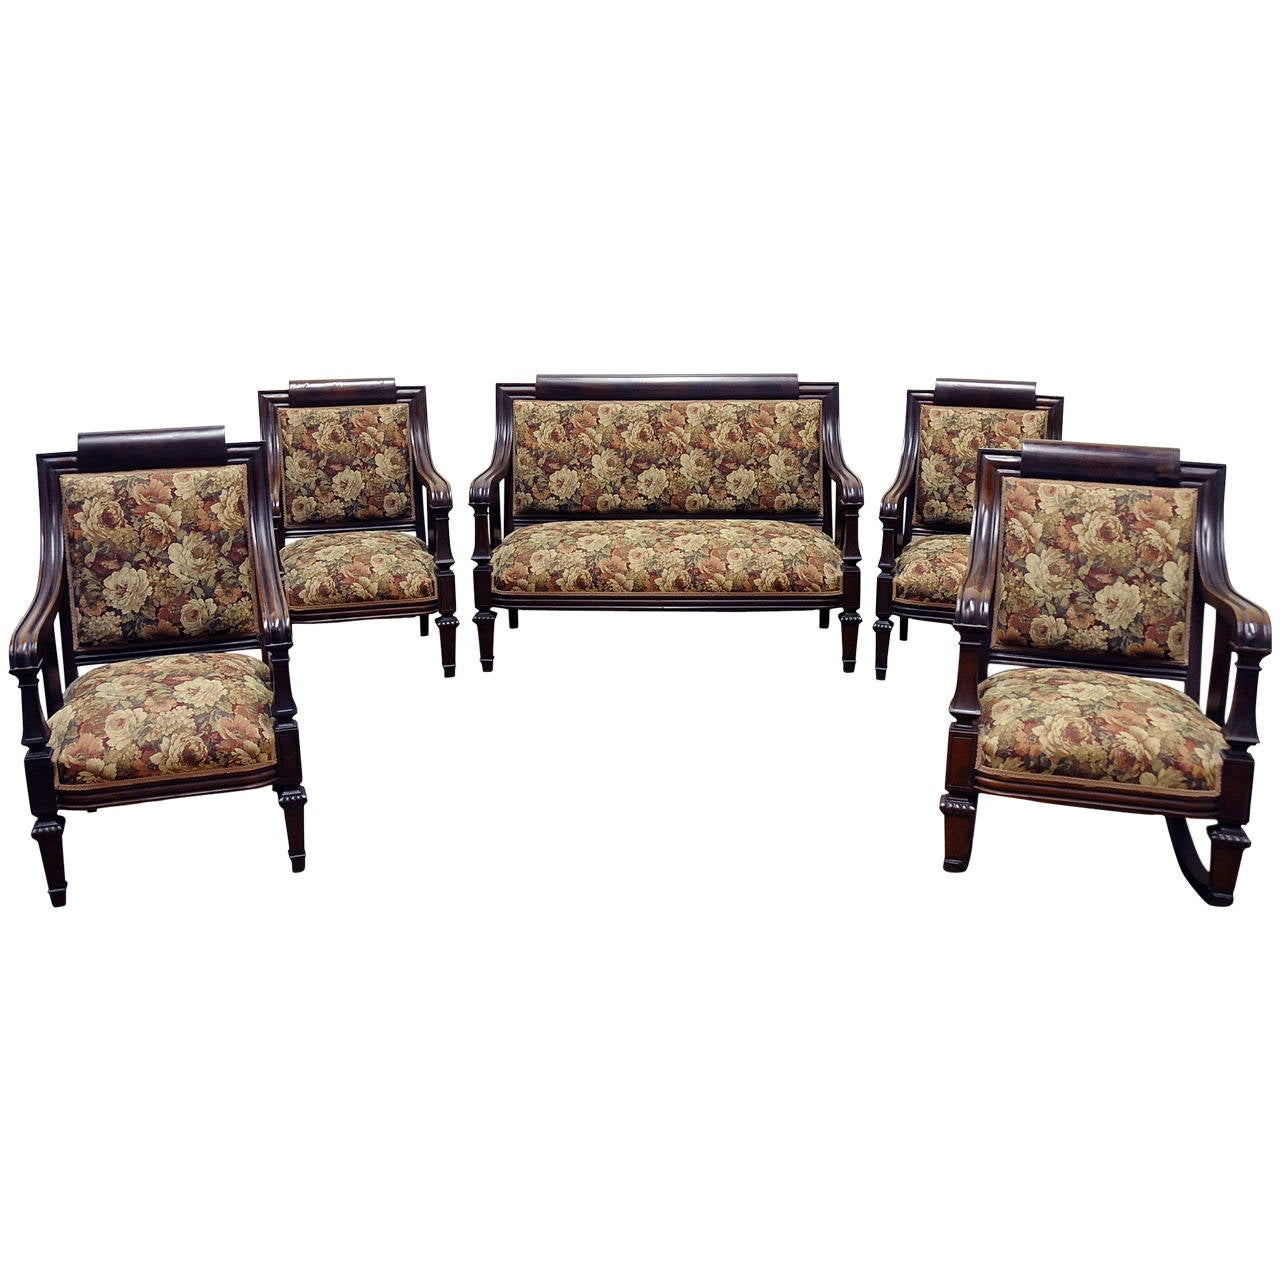 Antique federal mahogany empire style parlor set with - Antique living room furniture sets ...